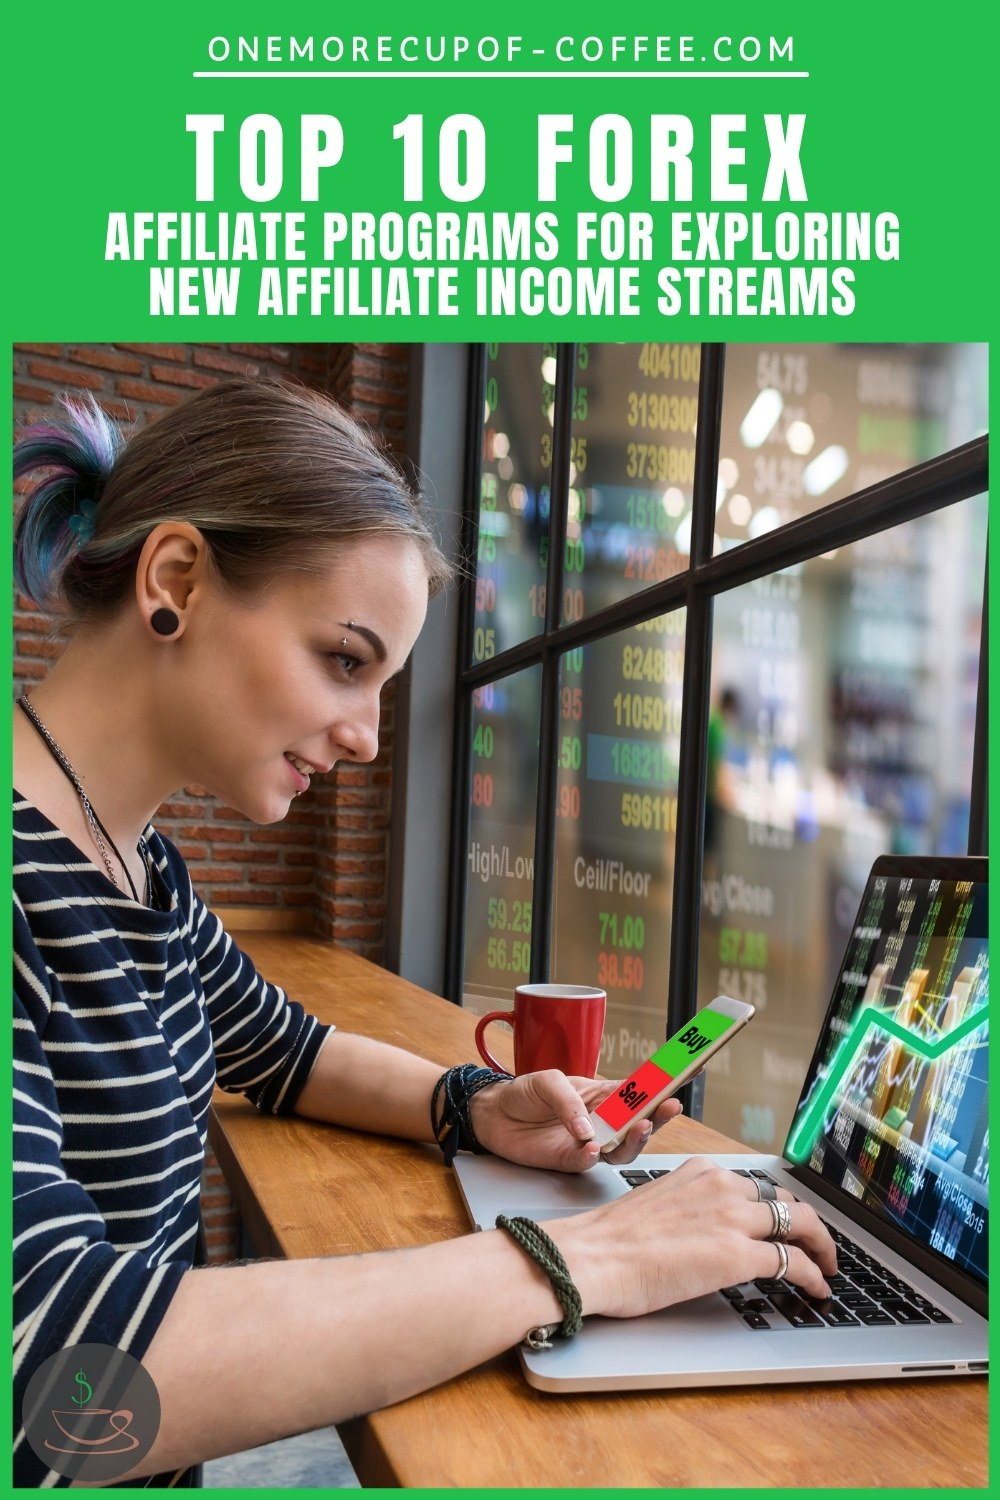 """woman wearing striped white and blue top, hair tie up in a bun, holding mobile phone in one hand, other hand is working on an open laptop with trading platform software on it, text at the top in green background """"Top 10 Forex Affiliate Programs For Exploring New Affiliate Income Streams"""""""